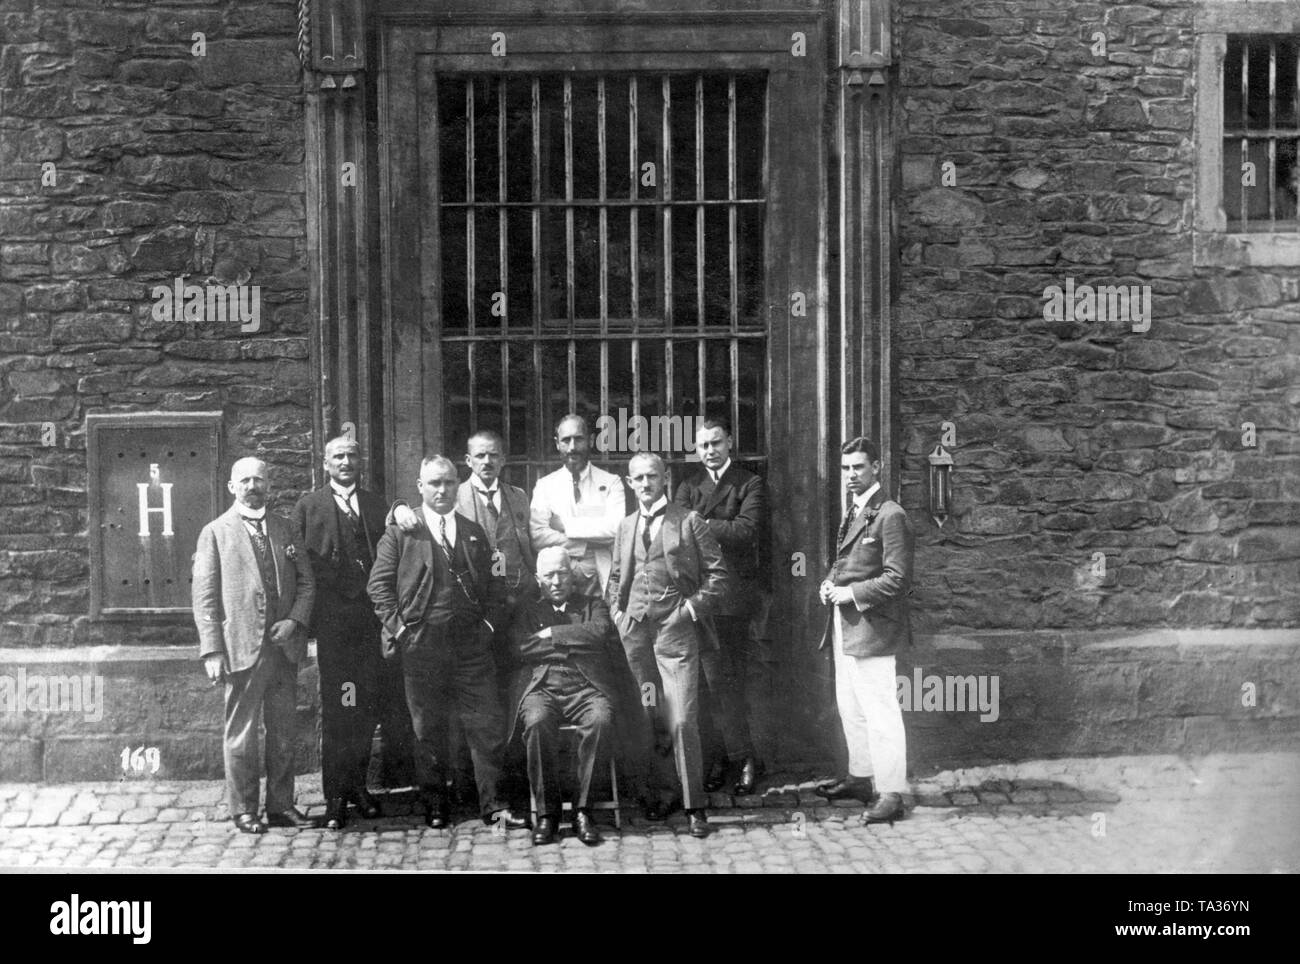 Group photo of several high-ranking municipal and state officials who were sentenced to prison by a French military court. They are posing in front of the penitentiary, where they have to serve time (Undated photo). - Stock Image